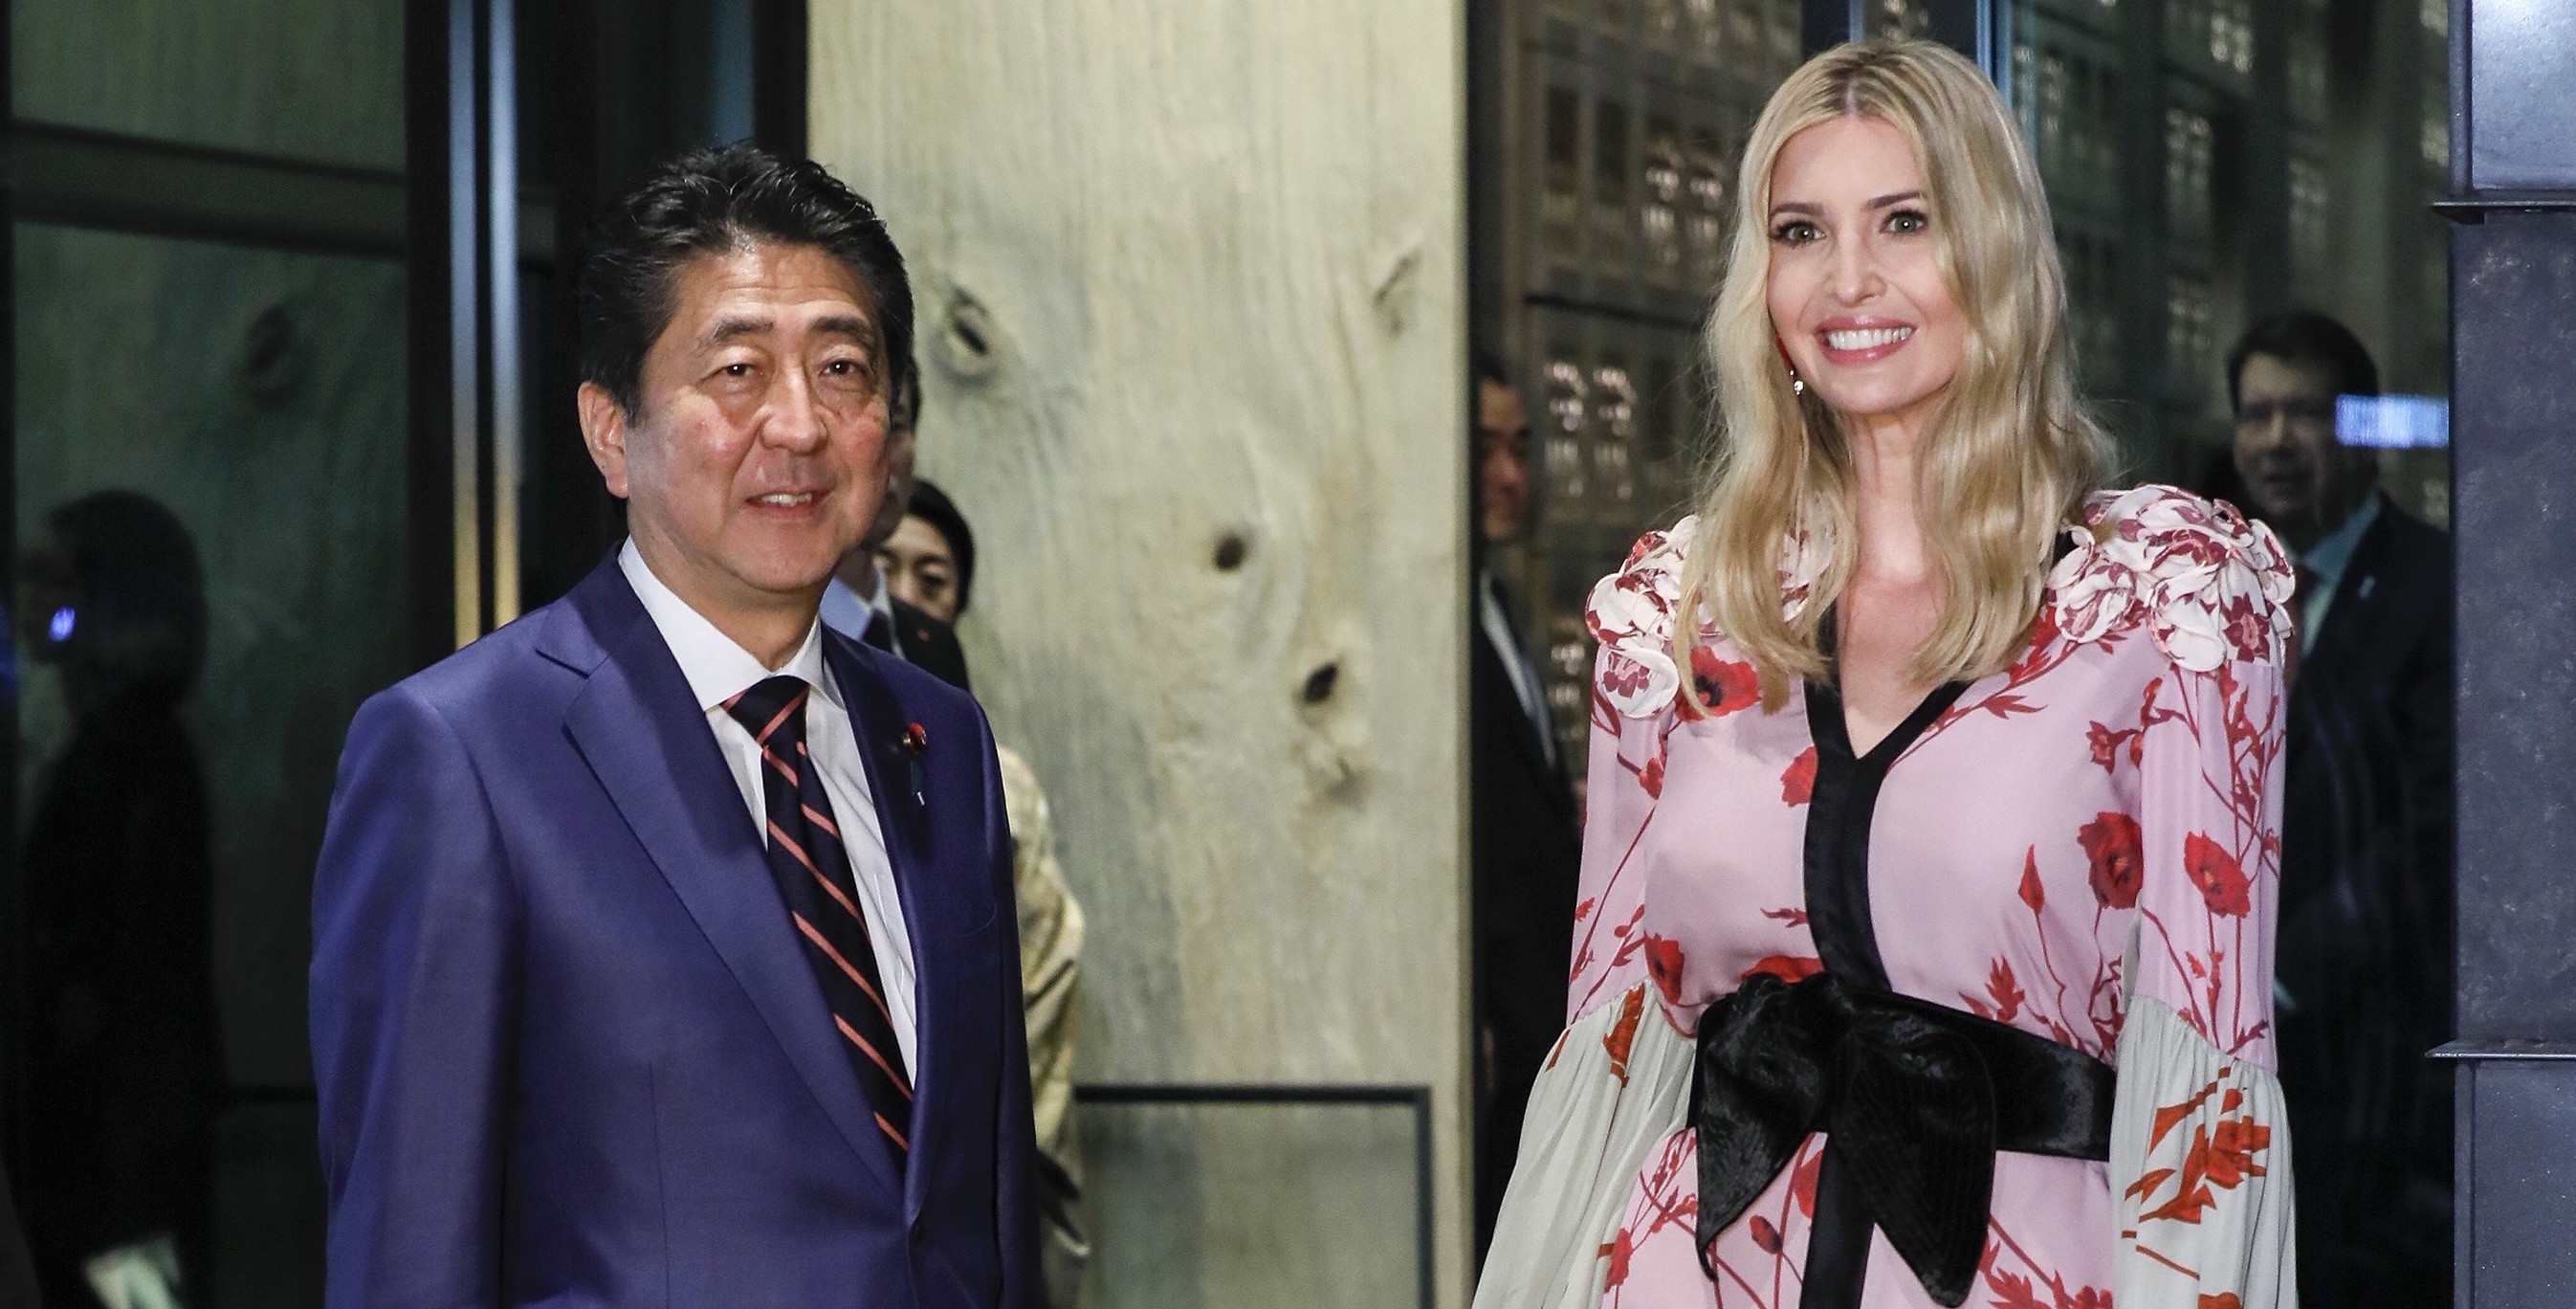 Japanese Prime Minister Shinzo Abe meeting with Ivanka Trump ahead of US President Donald Trump's arrival, November 2017 (Photo: Kimimasa Mayama /POOL/Anadolu Agency/Getty Images)